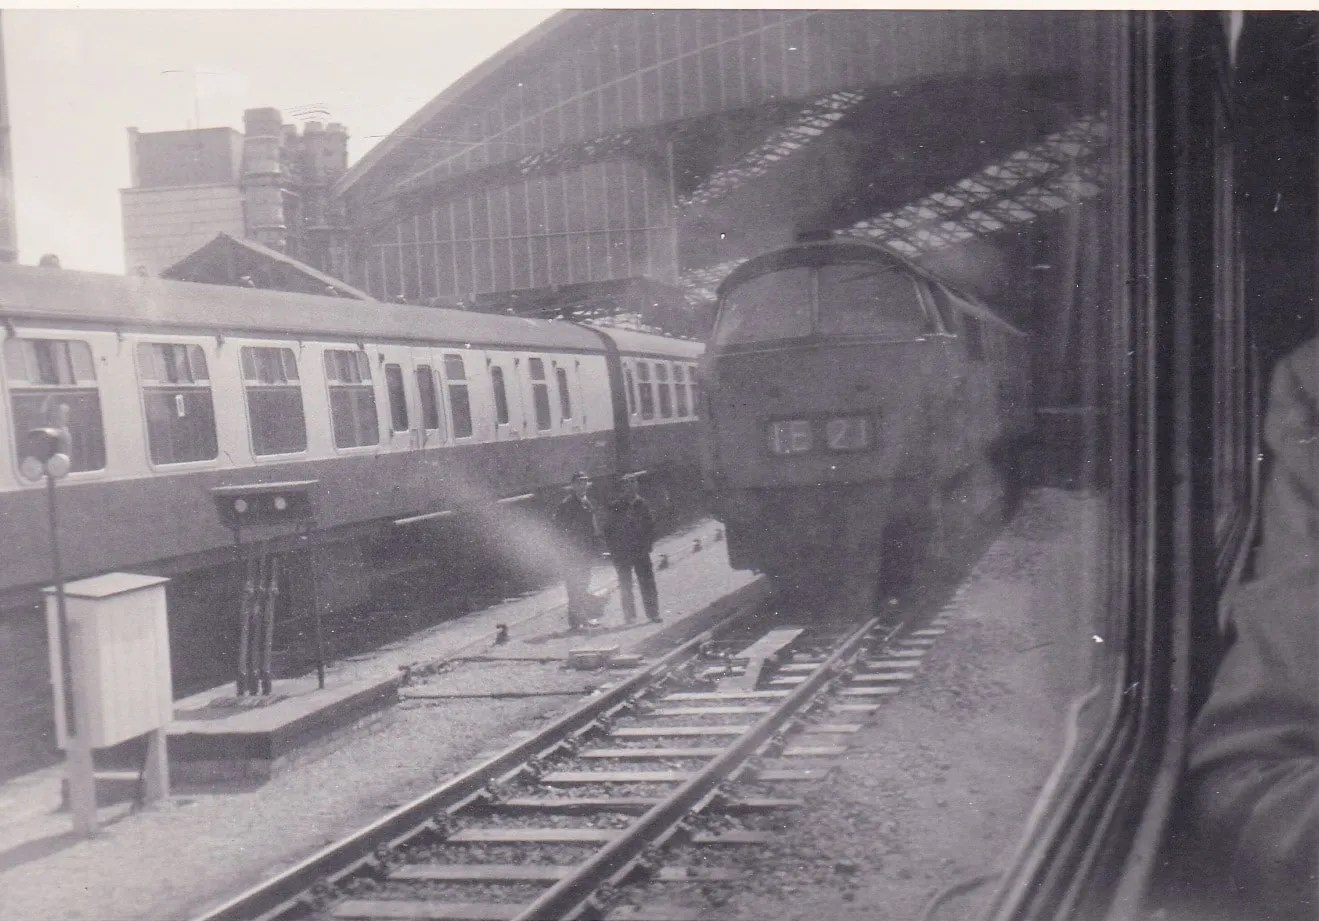 Bristol Temple Meads station on British Railways in the 1970s